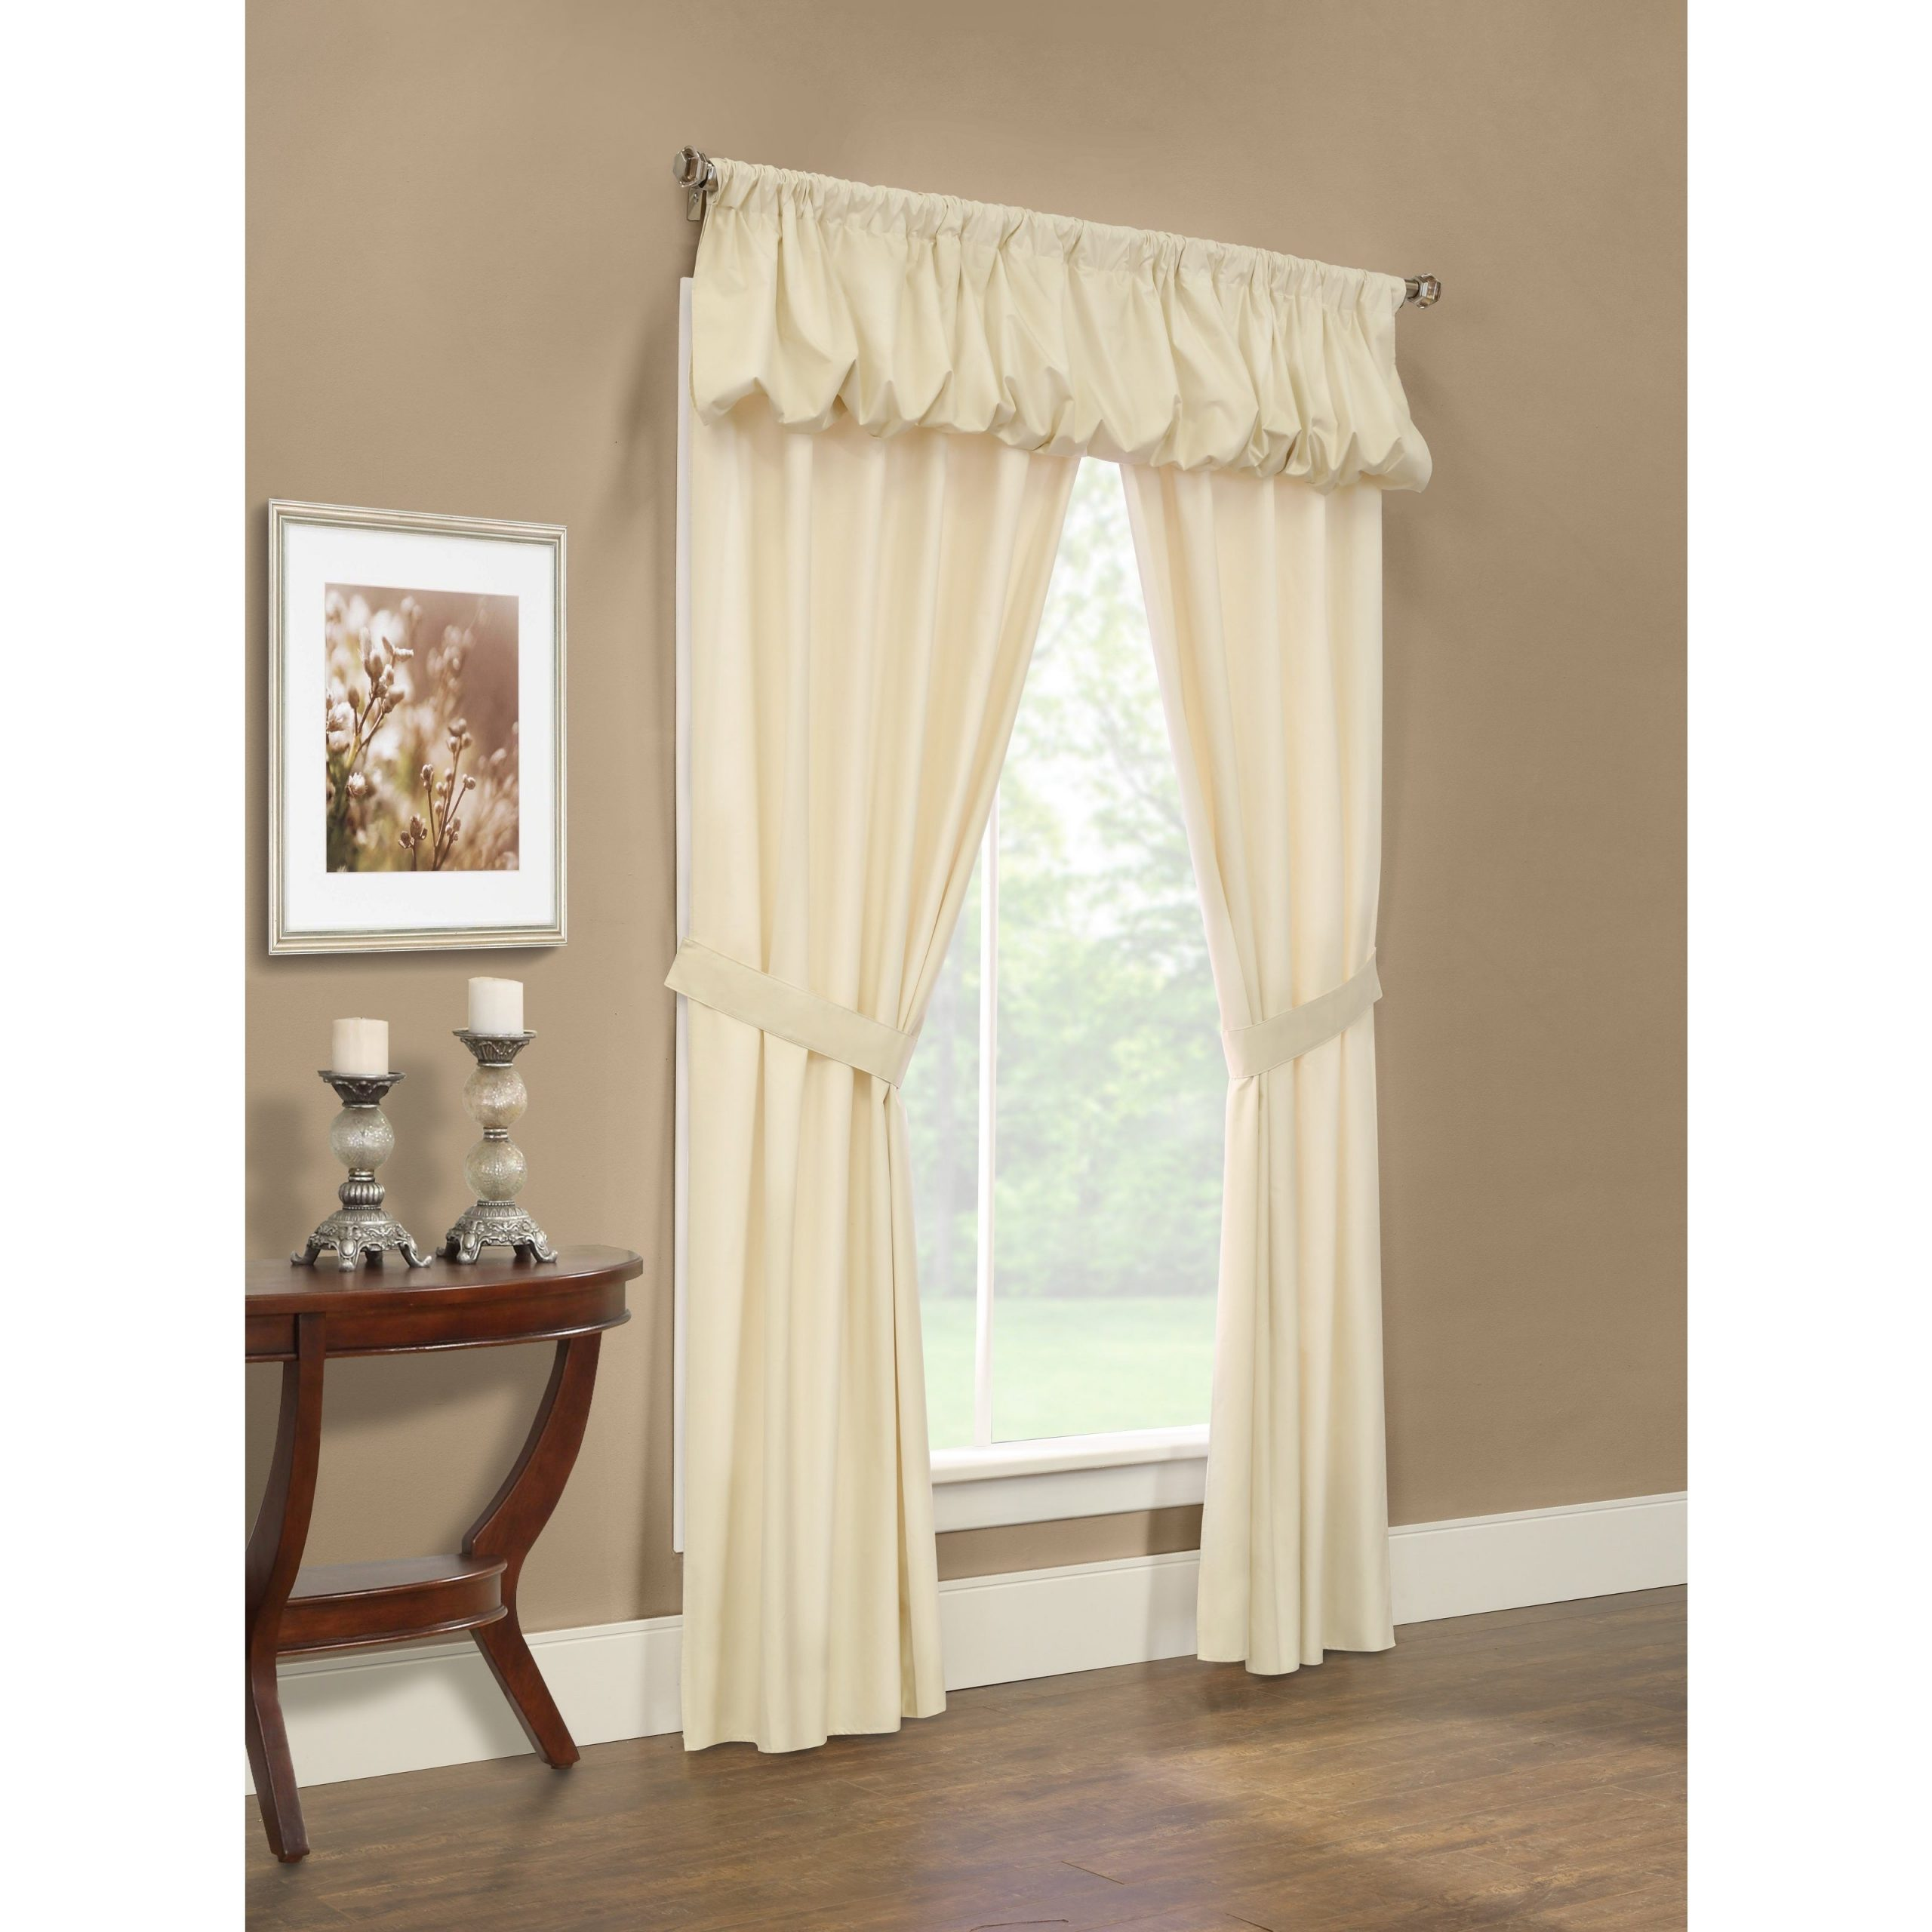 Thermalogic Prescott Insulated 5 Piece Curtain Panel Set Intended For Chocolate 5 Piece Curtain Tier And Swag Sets (View 16 of 20)